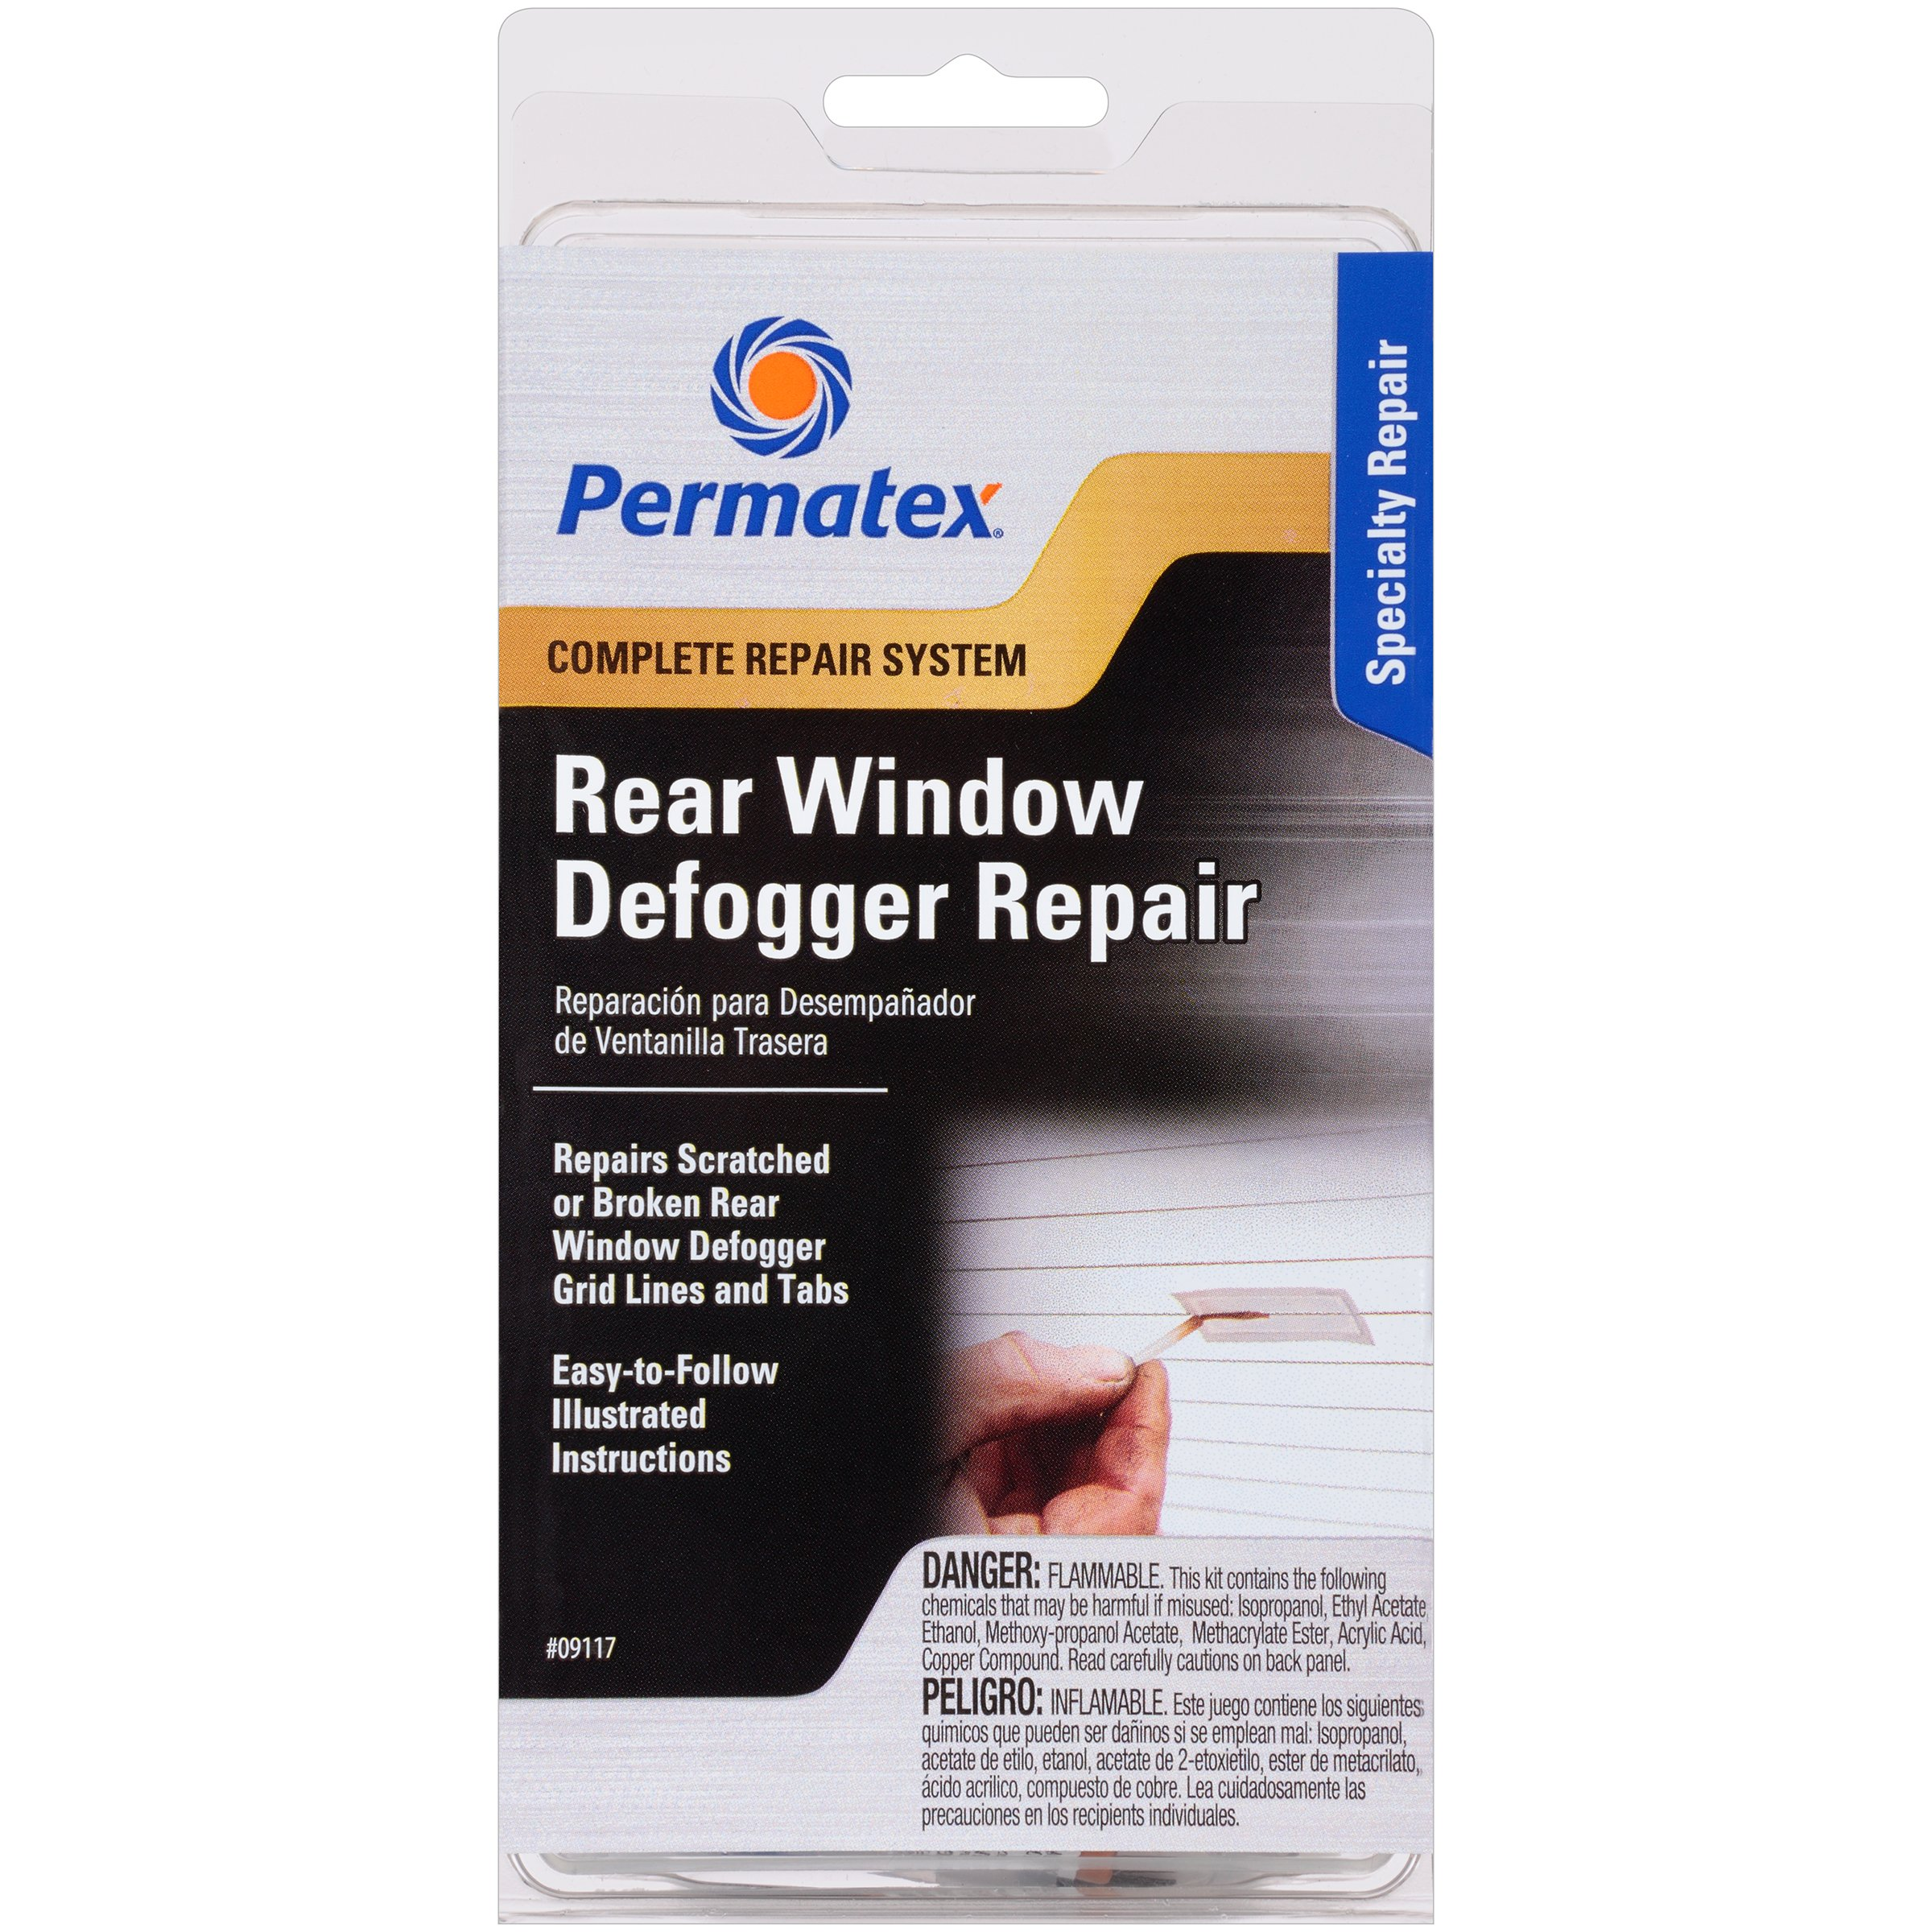 Permatex 09117 Complete Rear Window Defogger Repair Kit